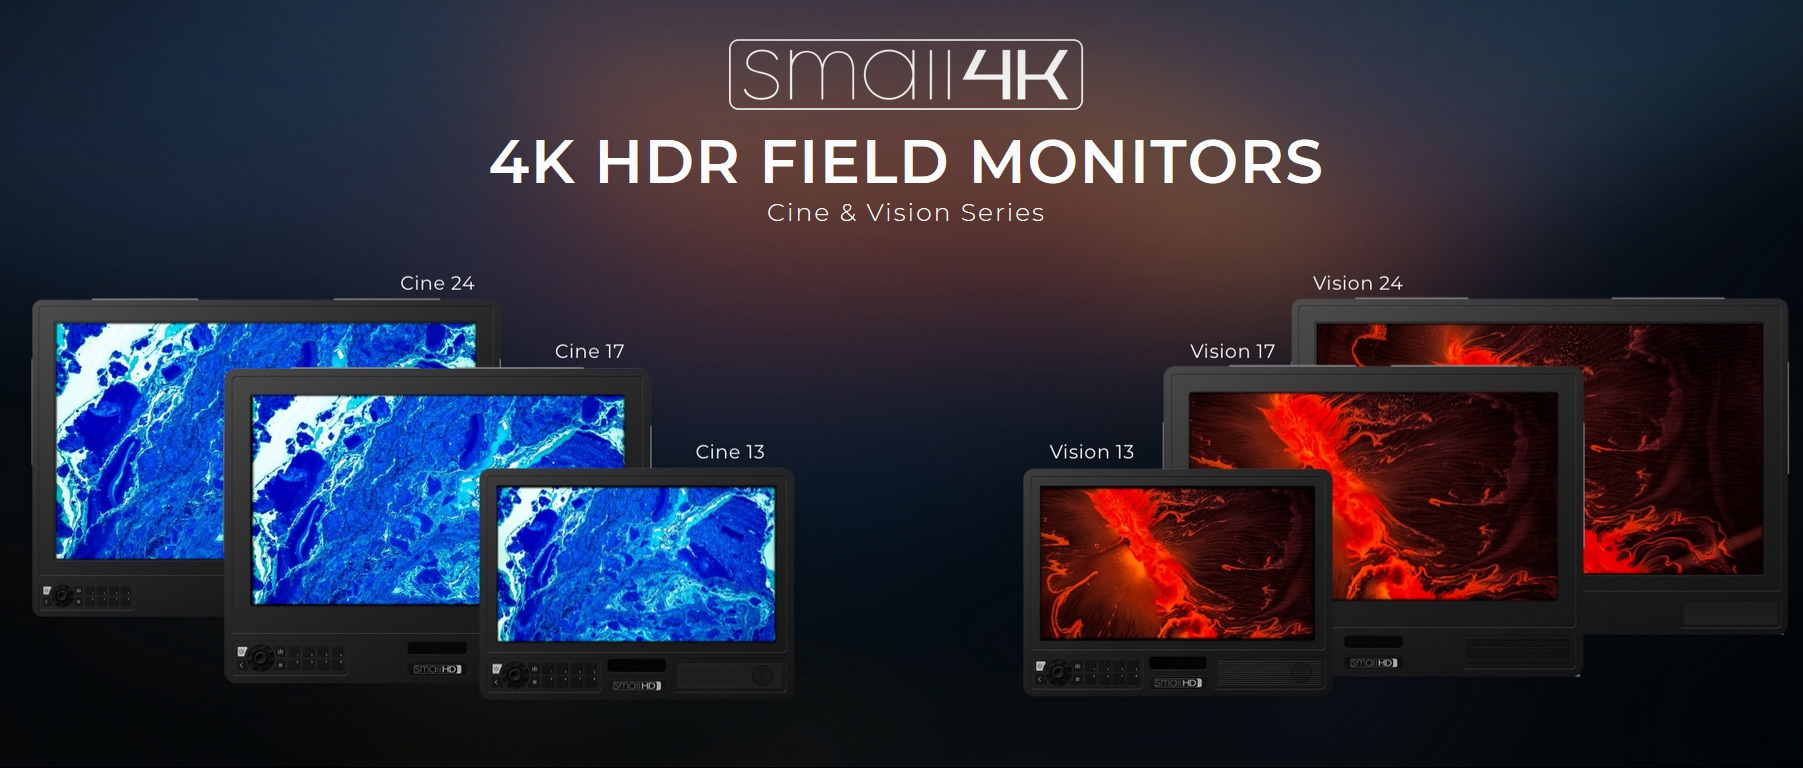 smallHD Cine/Vision: New 4K field monitors in sizes from 13 to 24